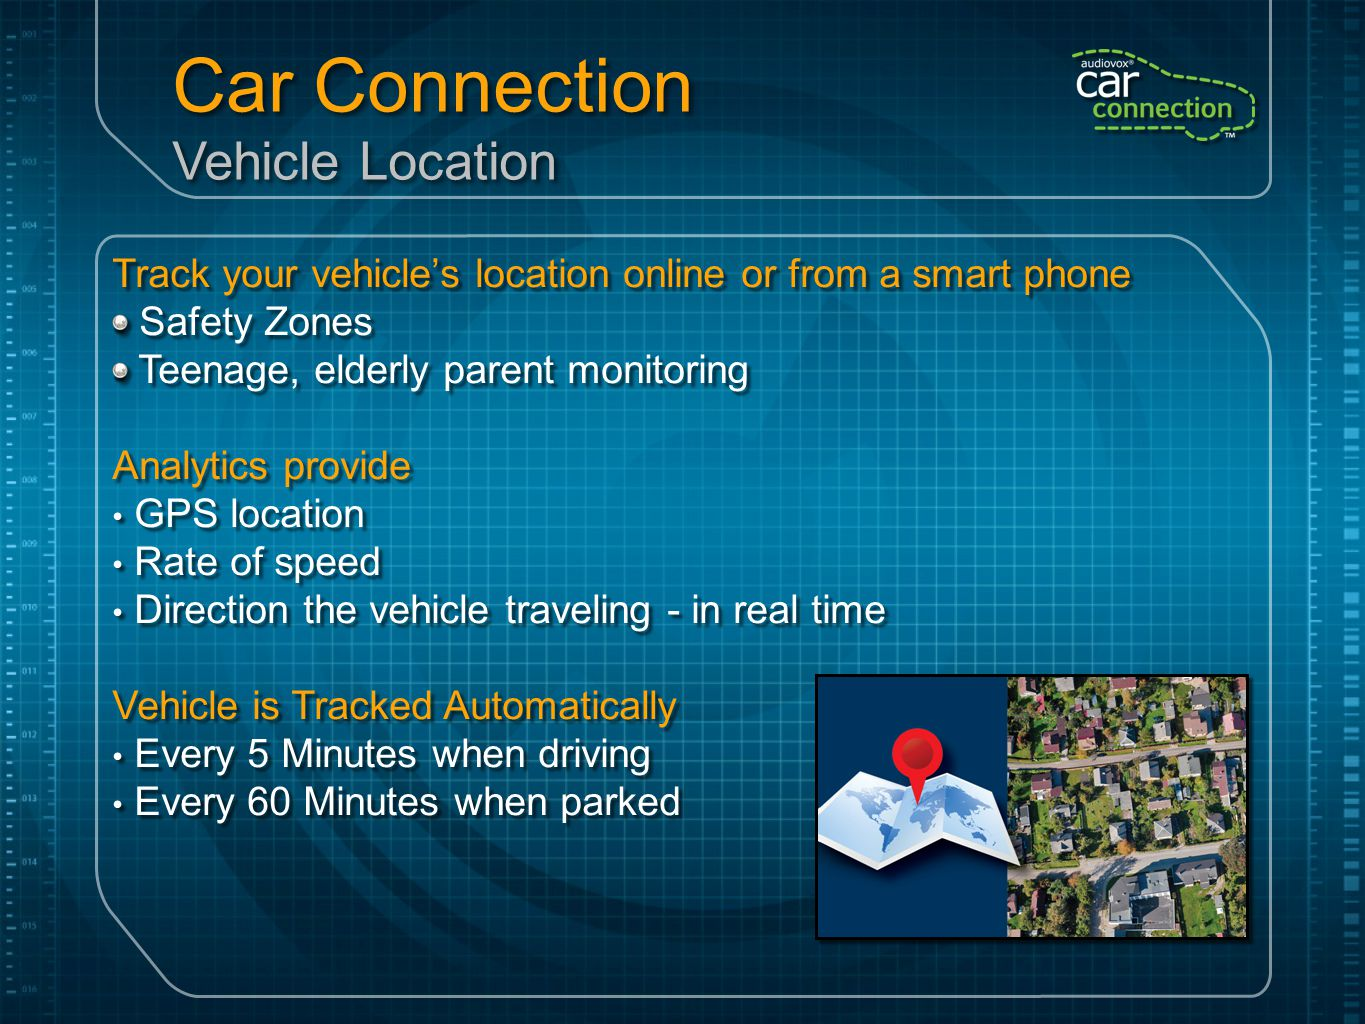 Apps, Apps, and more Apps Car Connection is the Platform that will enable applications to be added in the future Audiovox App Garage Leveraging the data from the vehicle and OBD device to drive Social networking, productivity, etc.